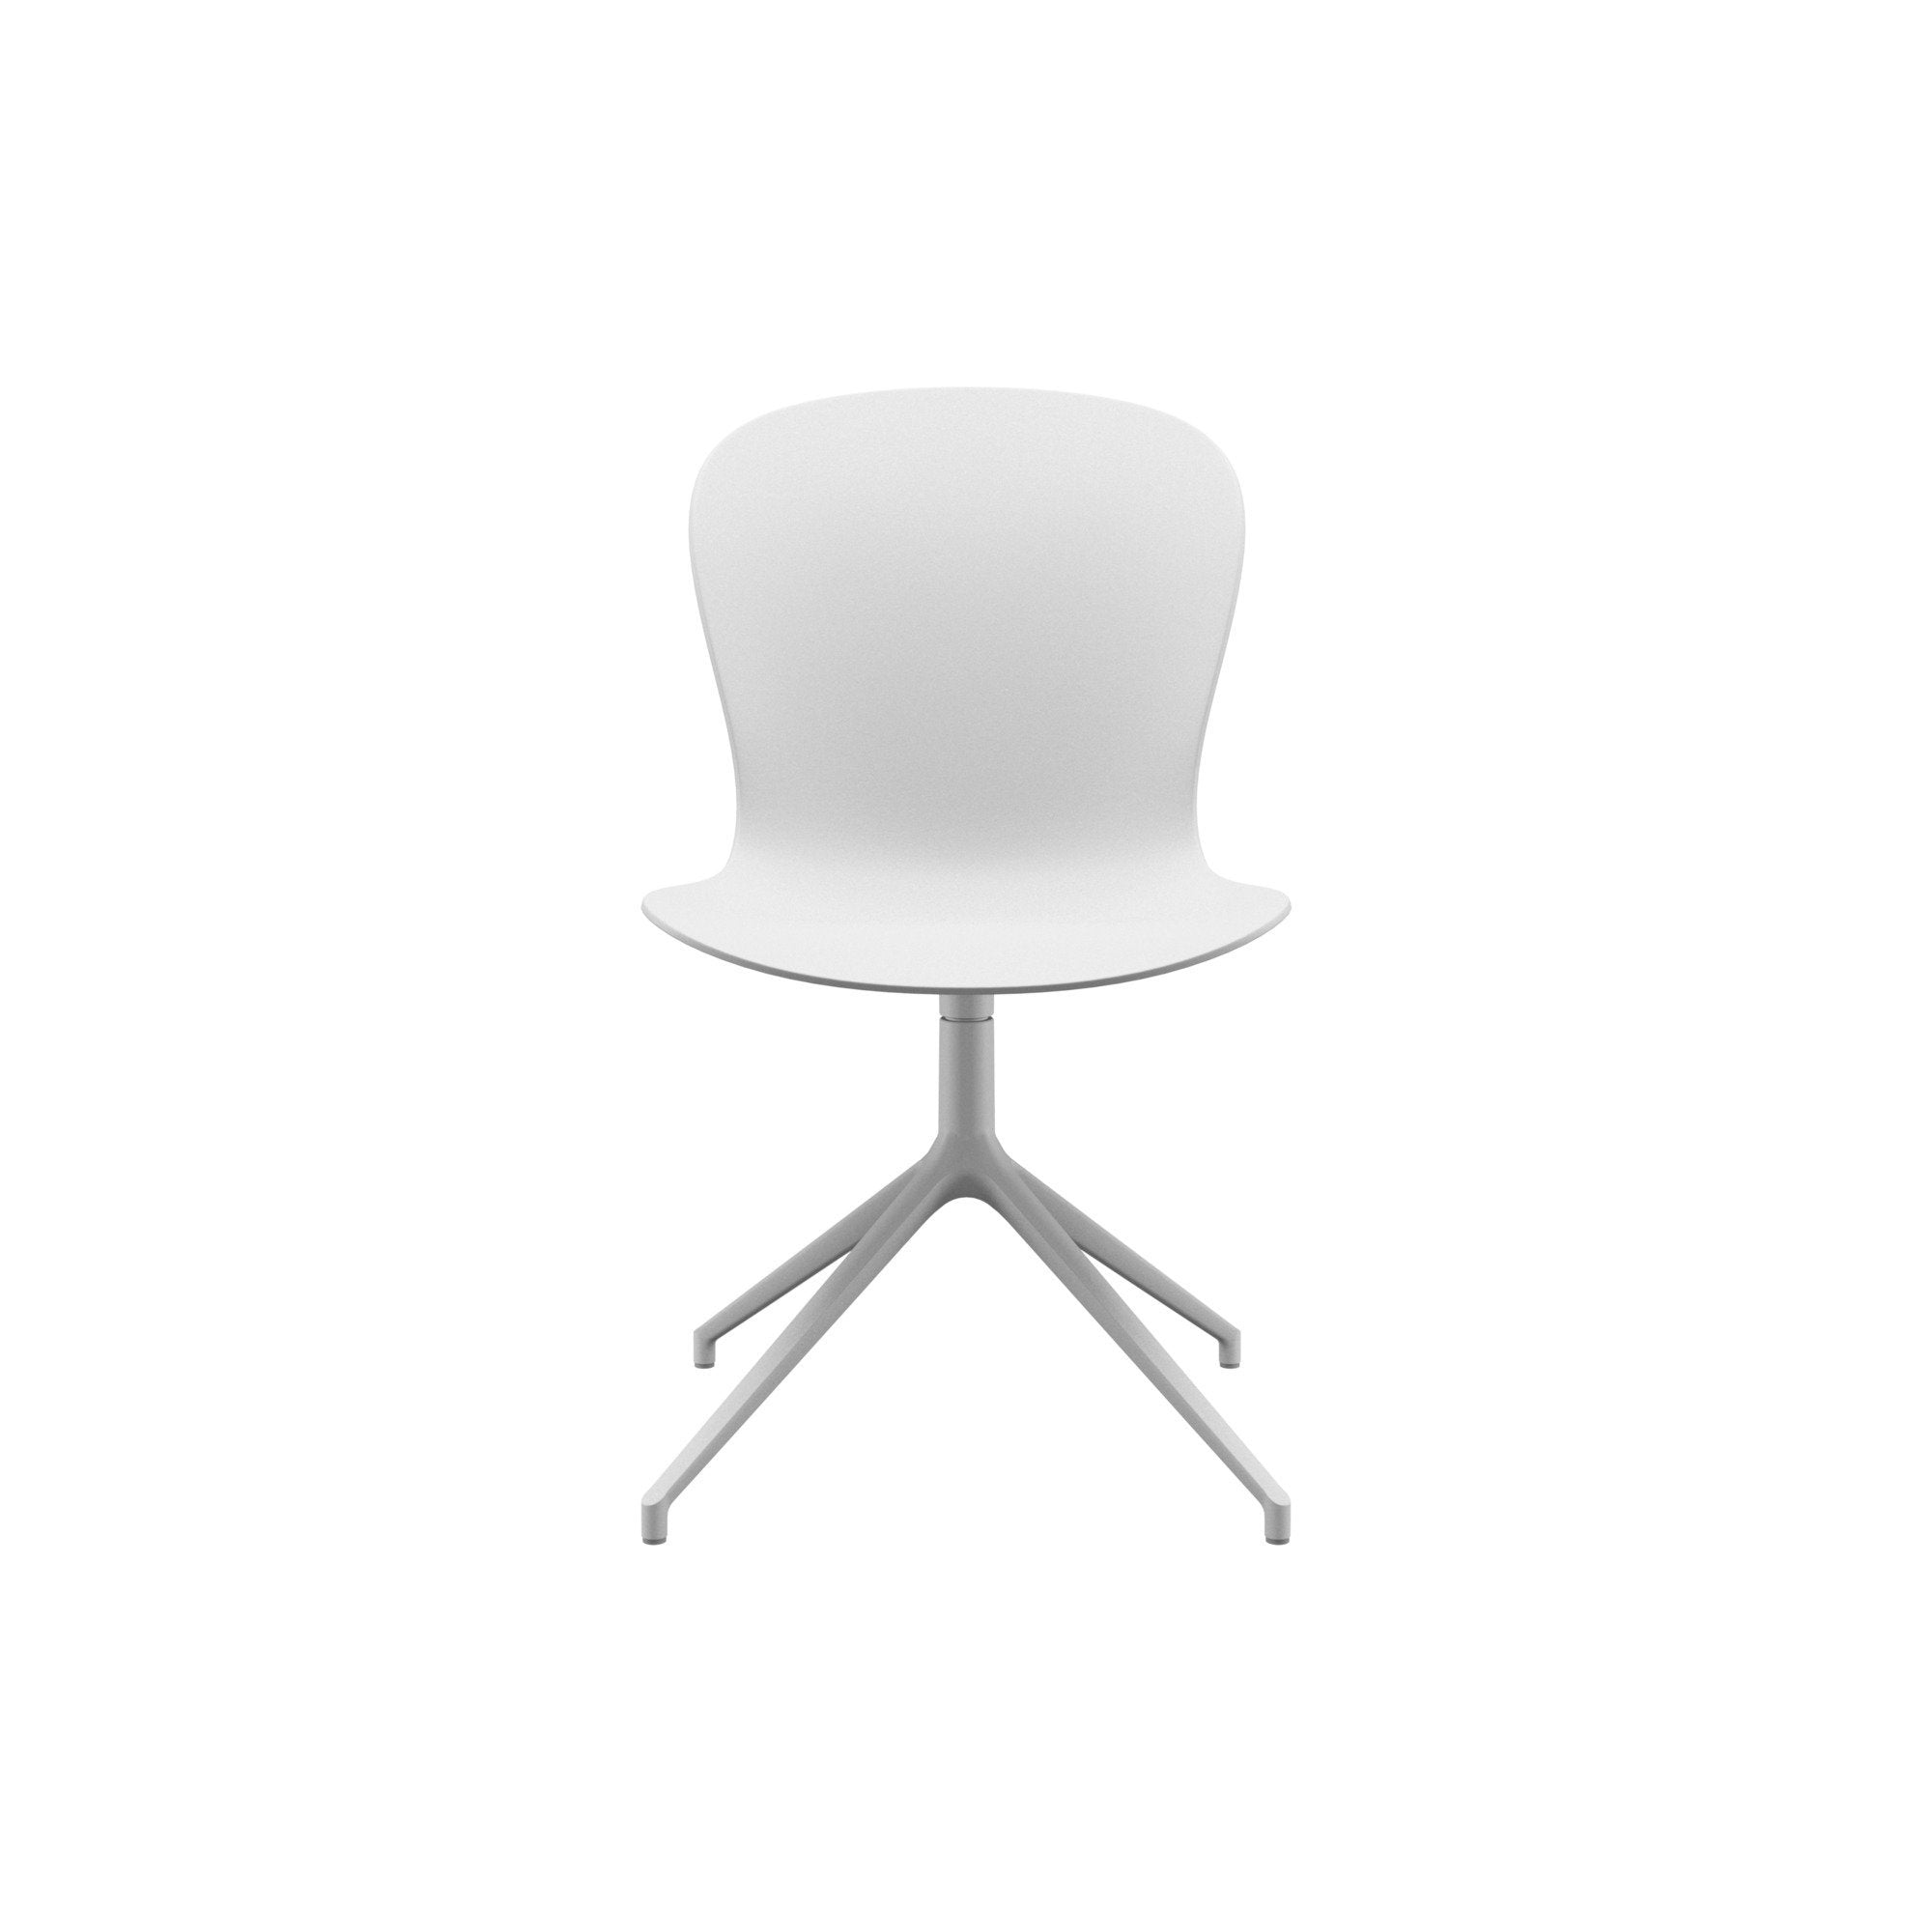 Adelaide Chair with swivel function - White